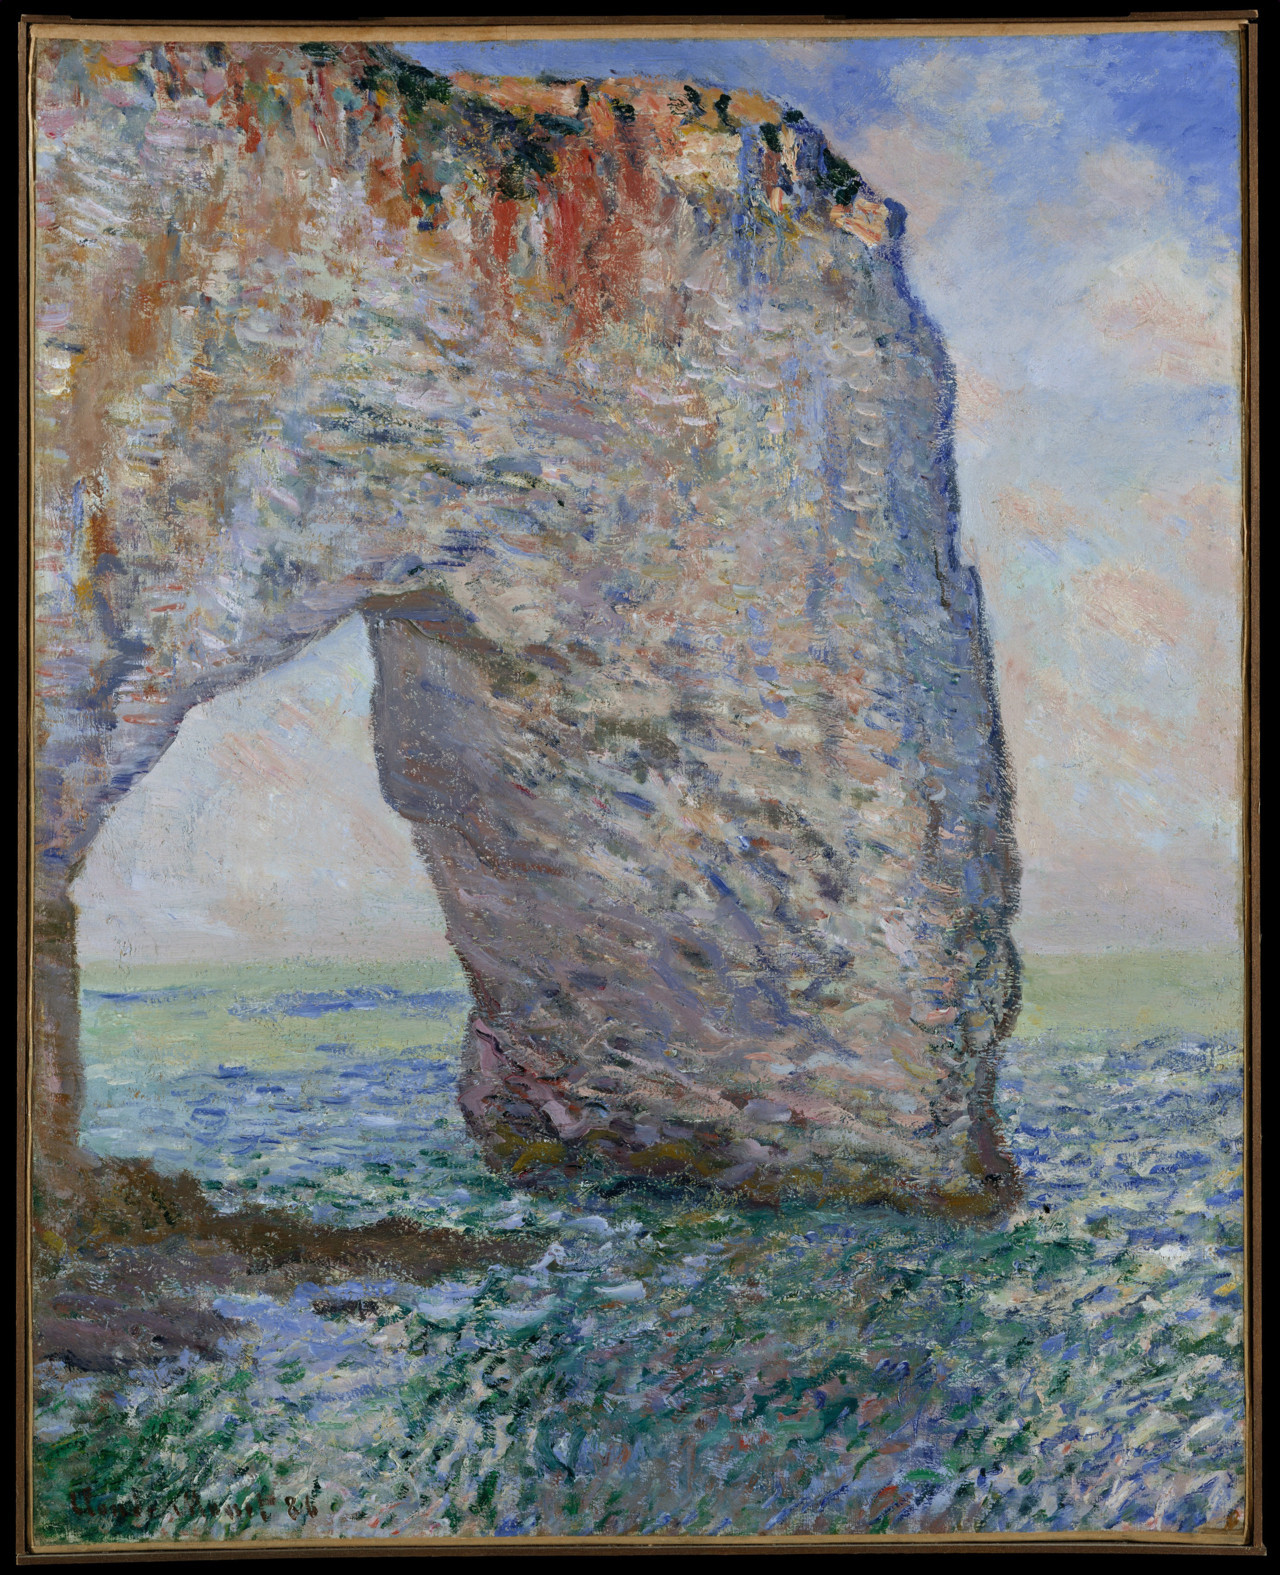 Claude Monet - The Manneporte near Etretat, 1886. Oil on canvas